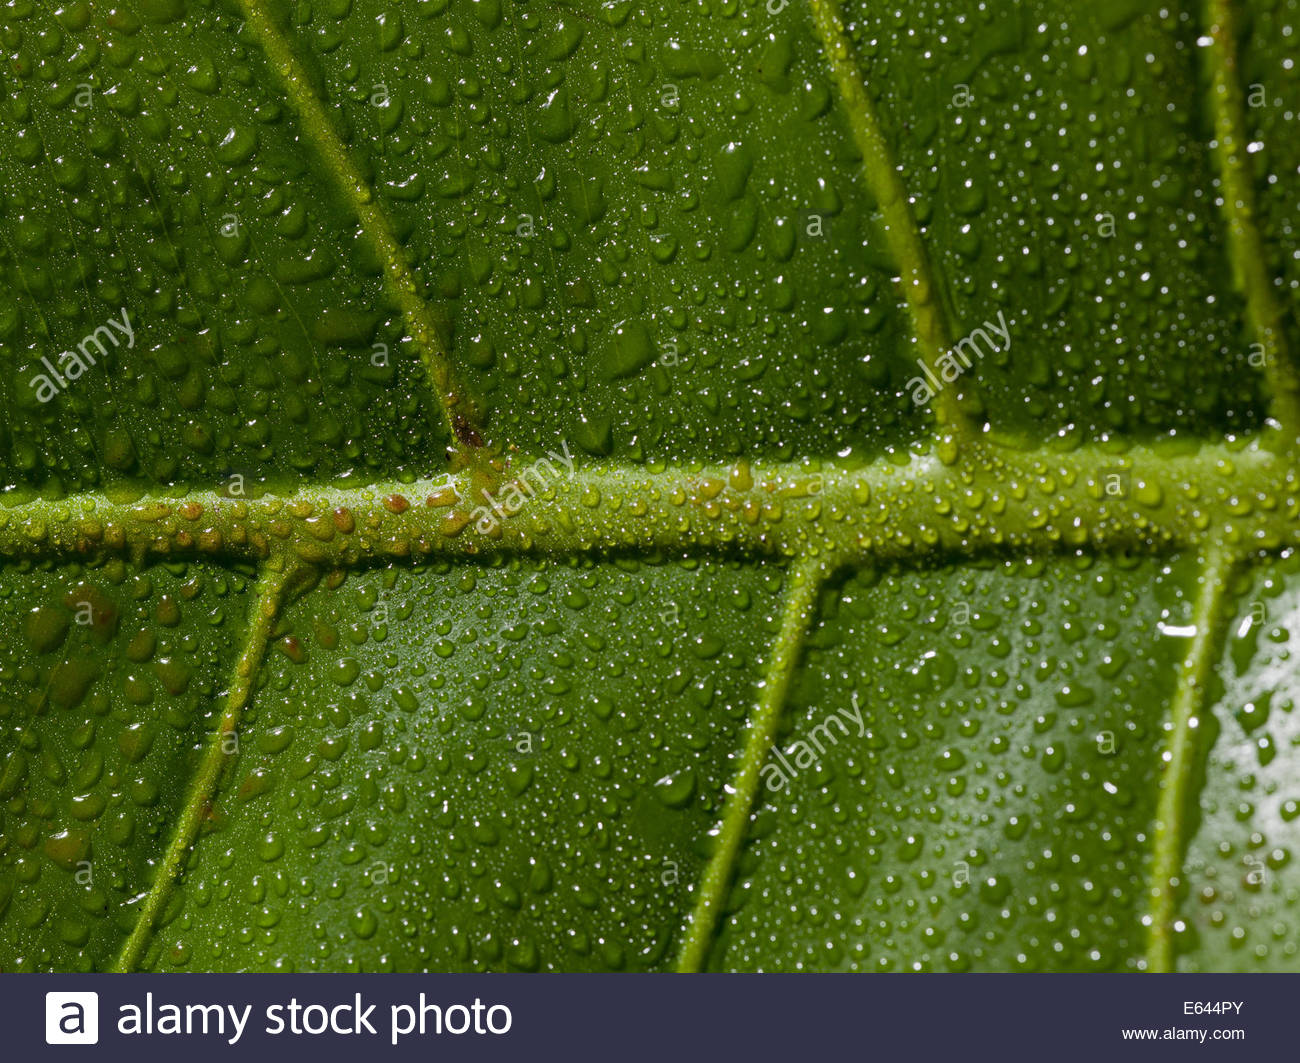 Close up of dew droplets and veins on green leaf - Stock Image